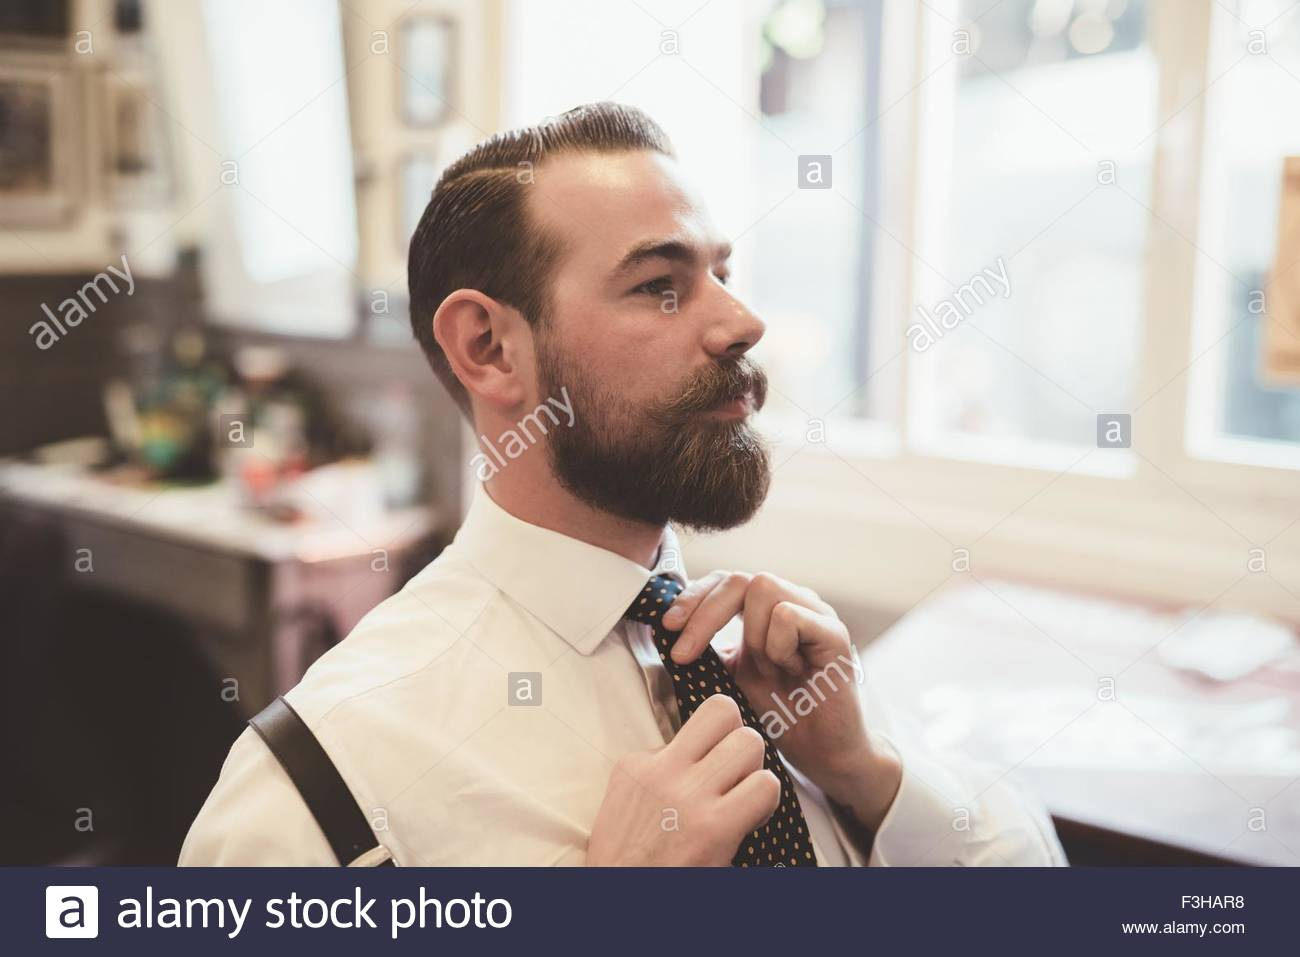 Mid adult man fastening tie in barber shop - Stock Image